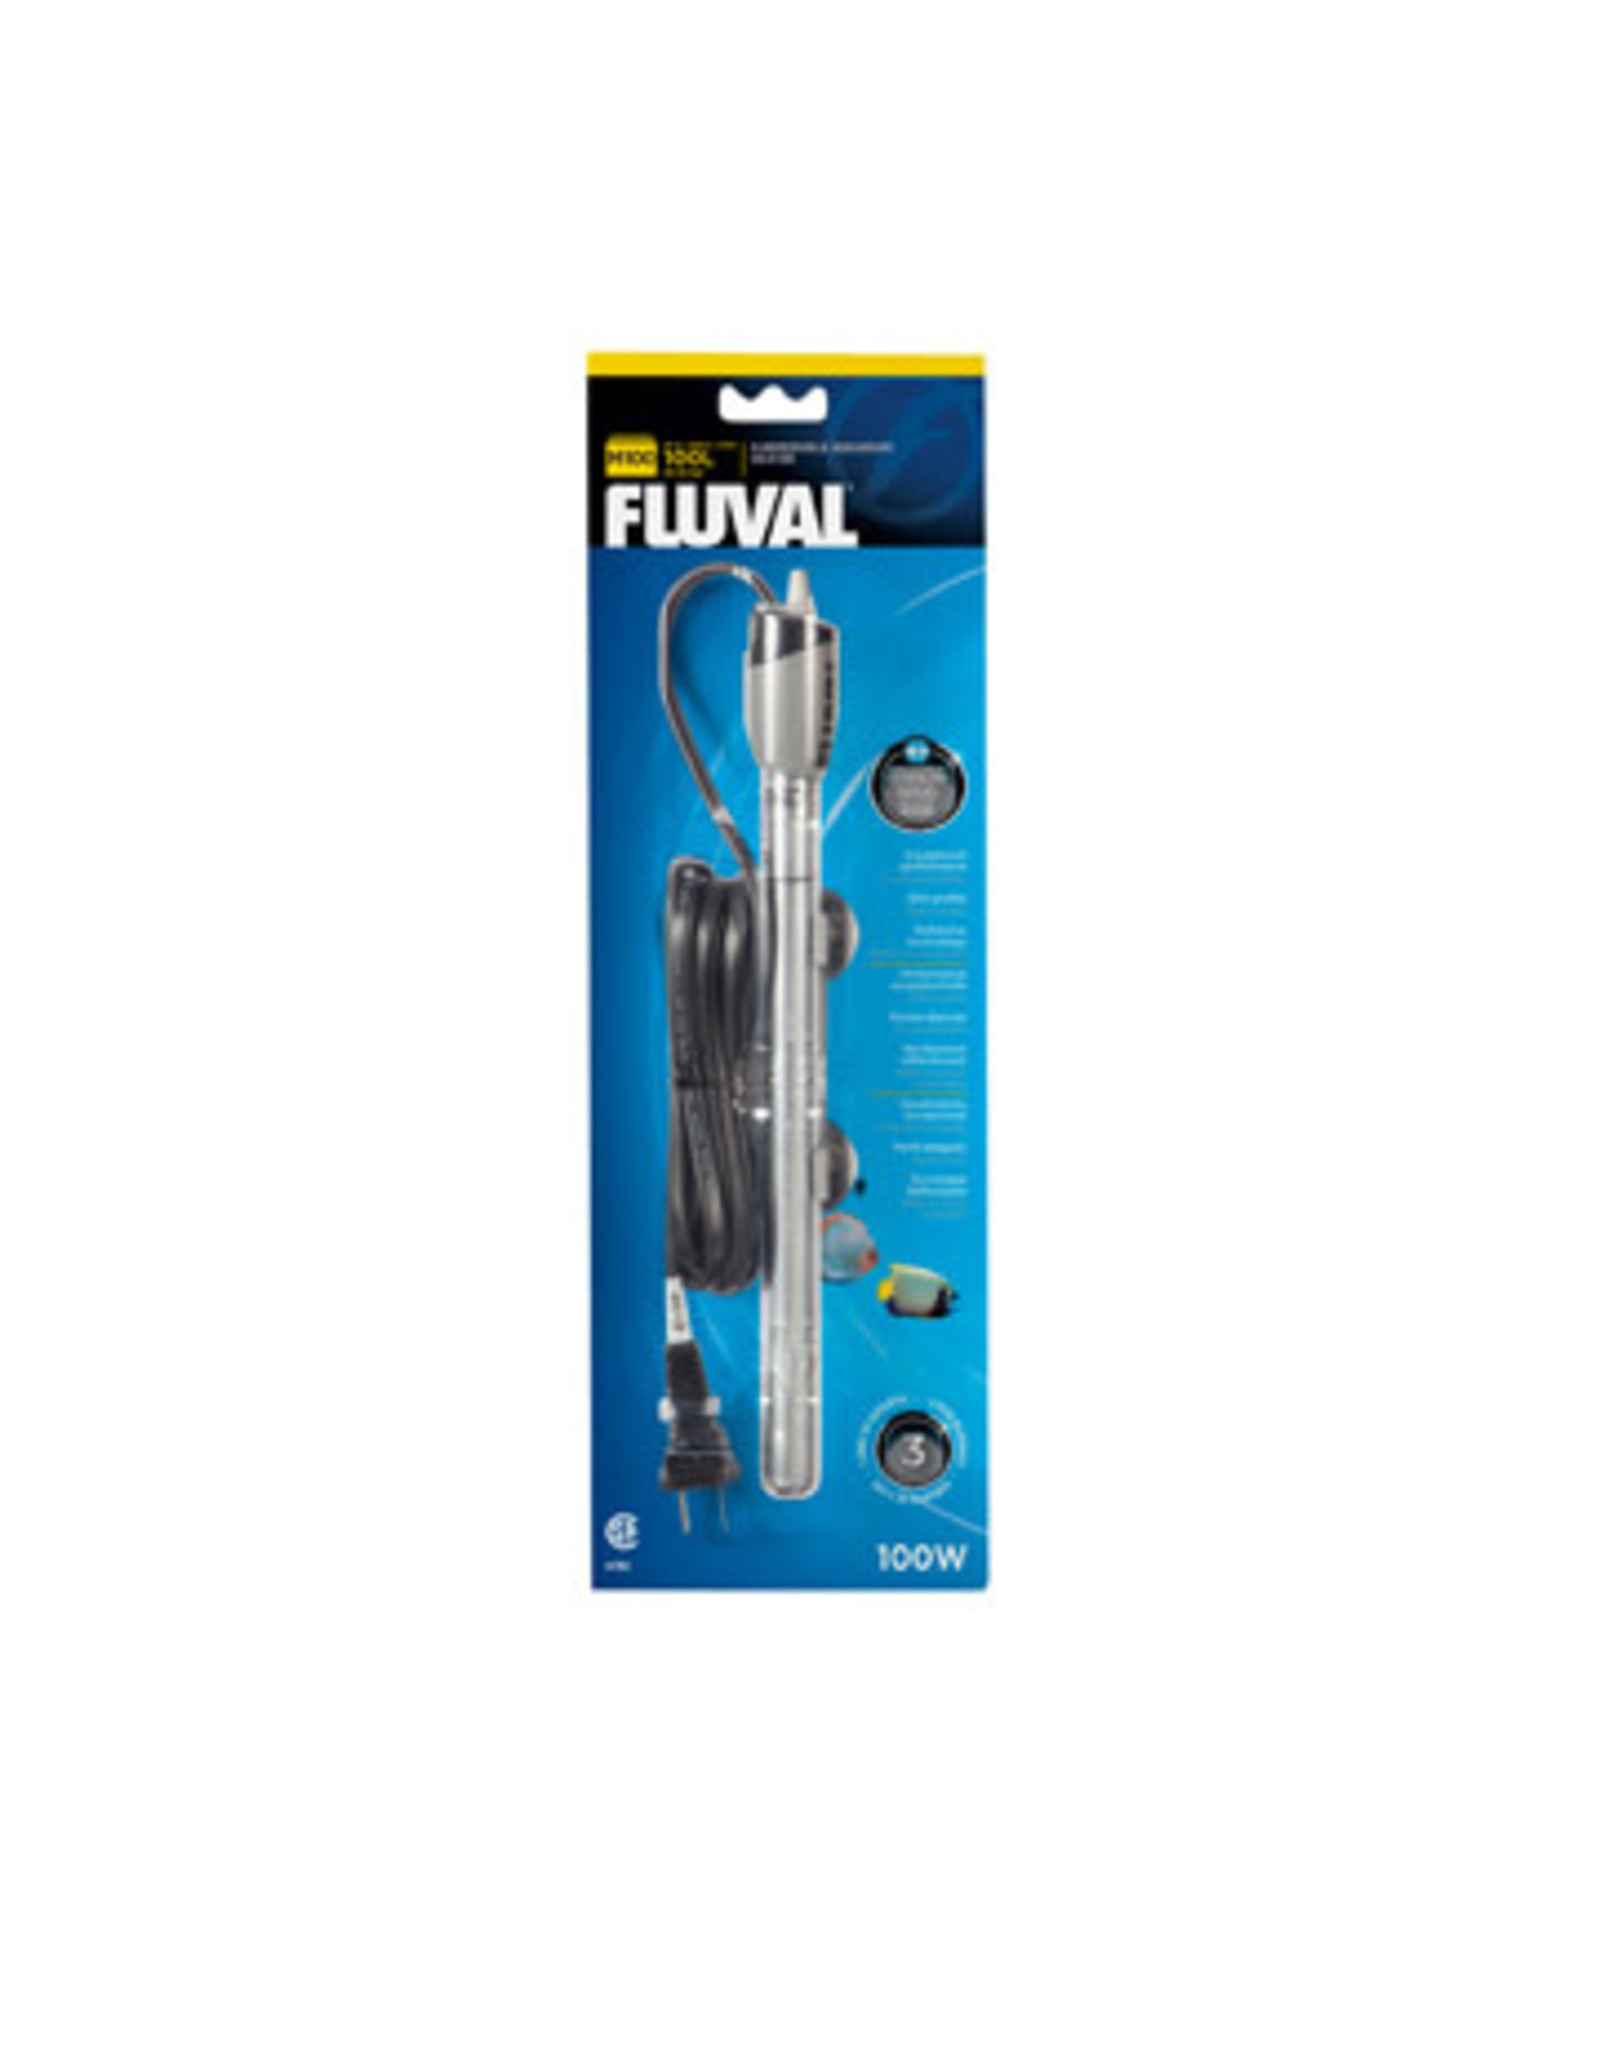 Fluval Fluval M100 Submersible Heater - 100 W